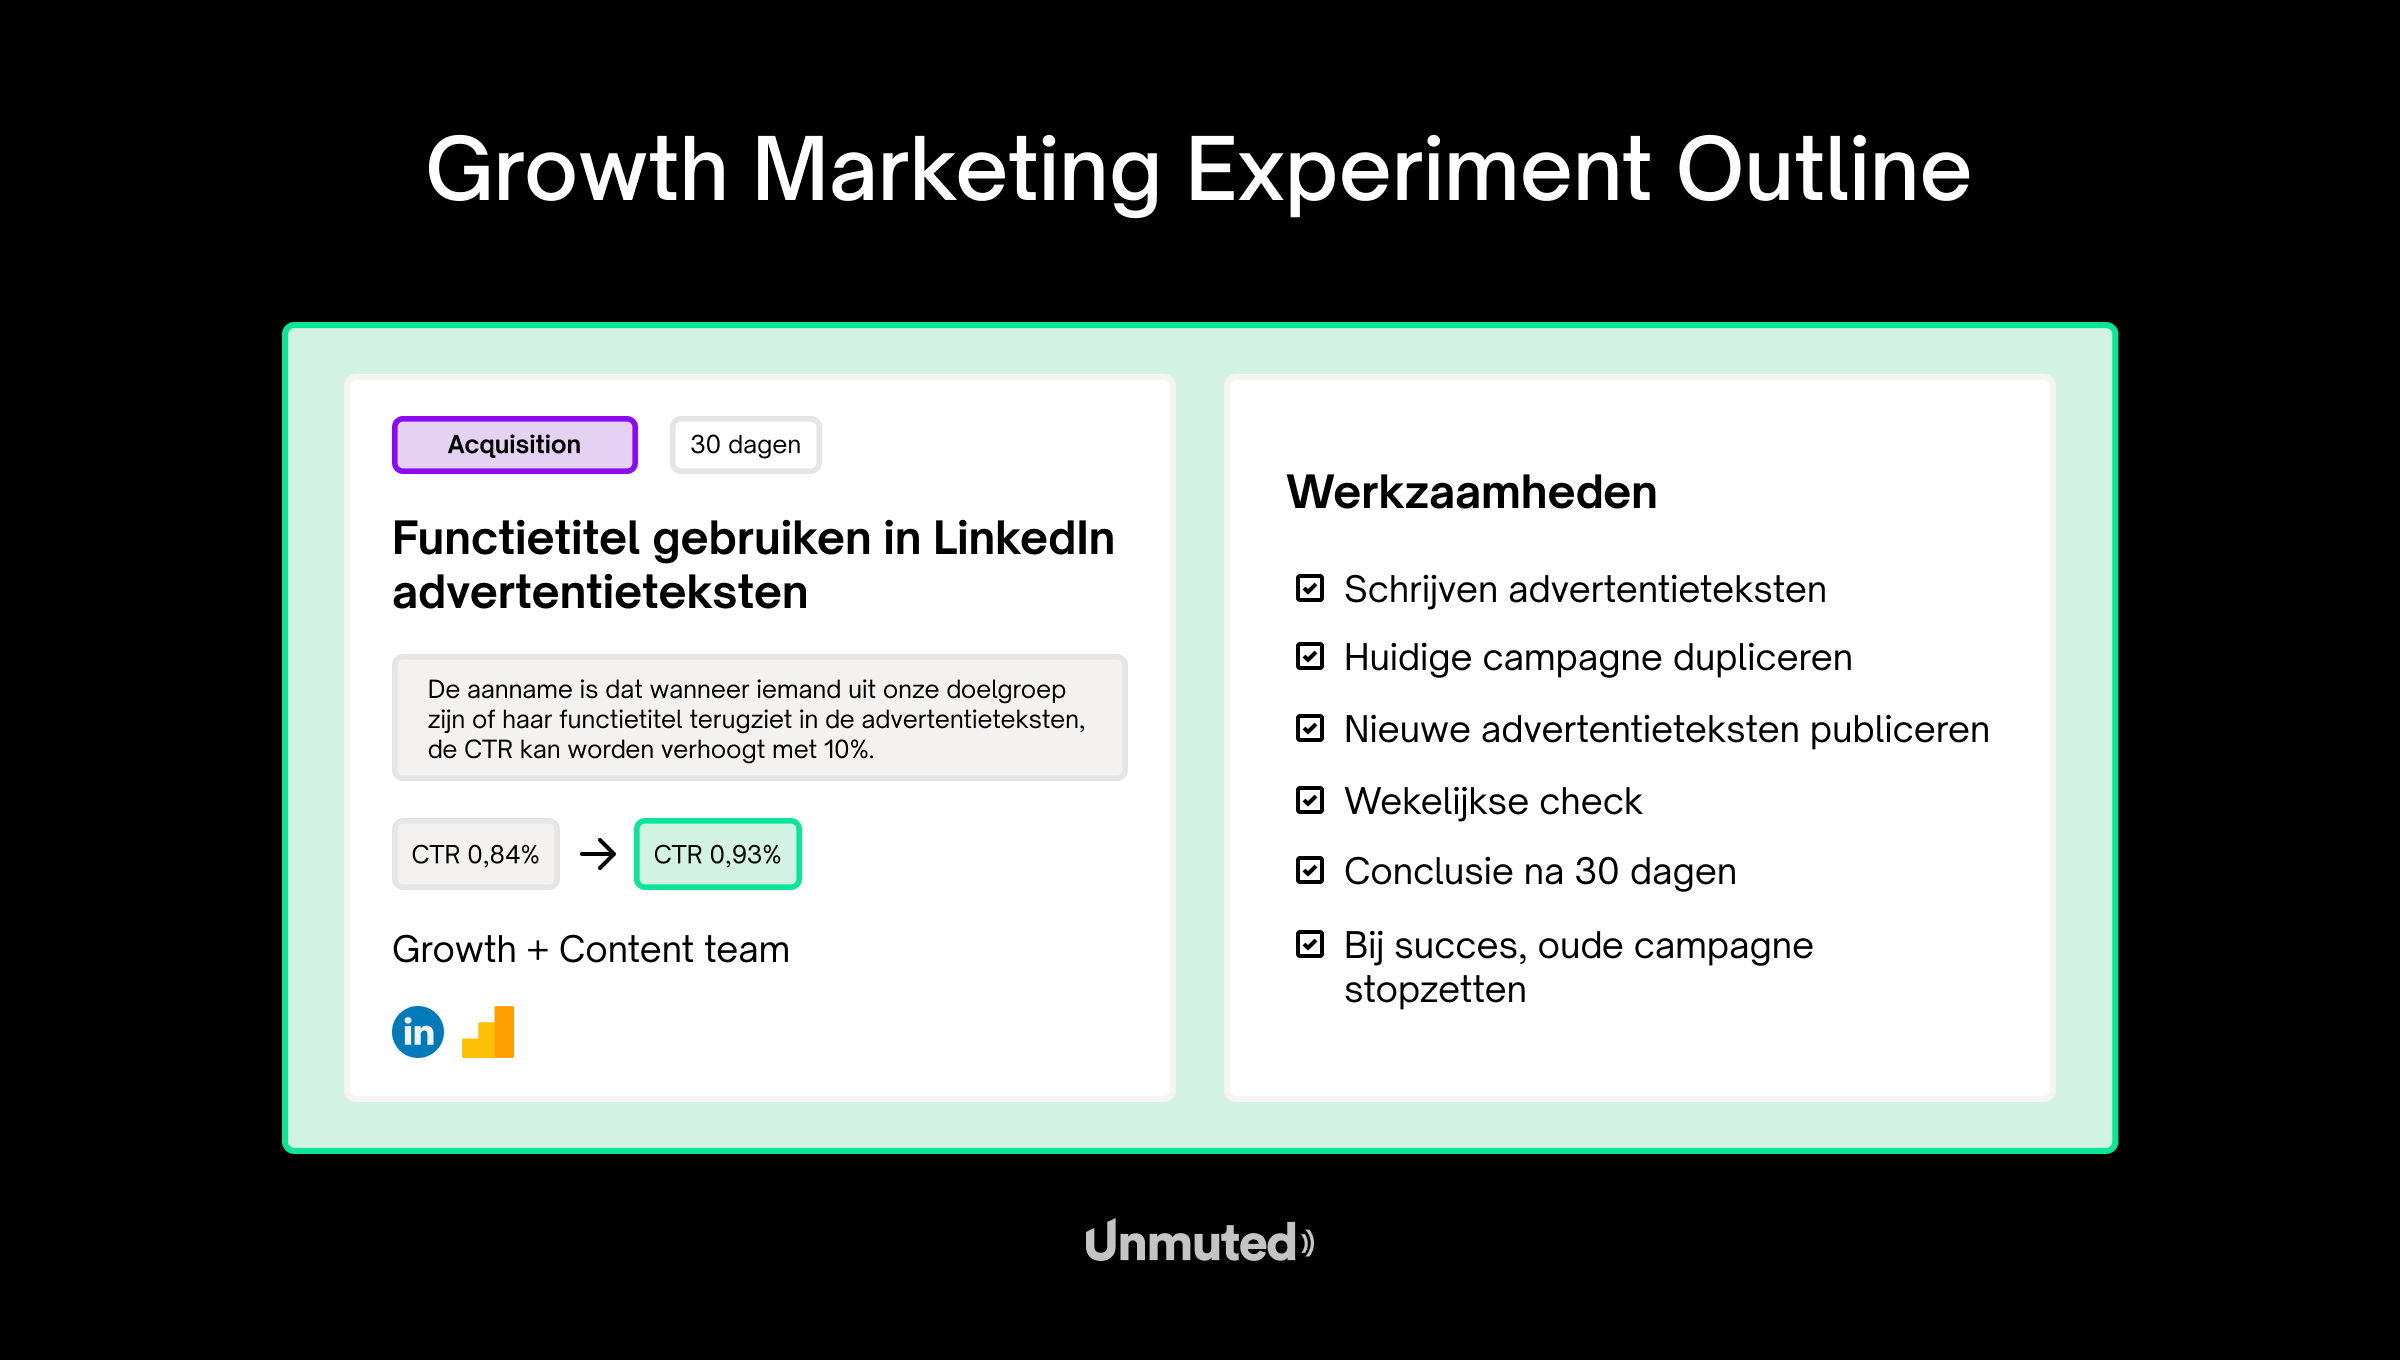 Growth-Marketing-Experiment-Outline-visual